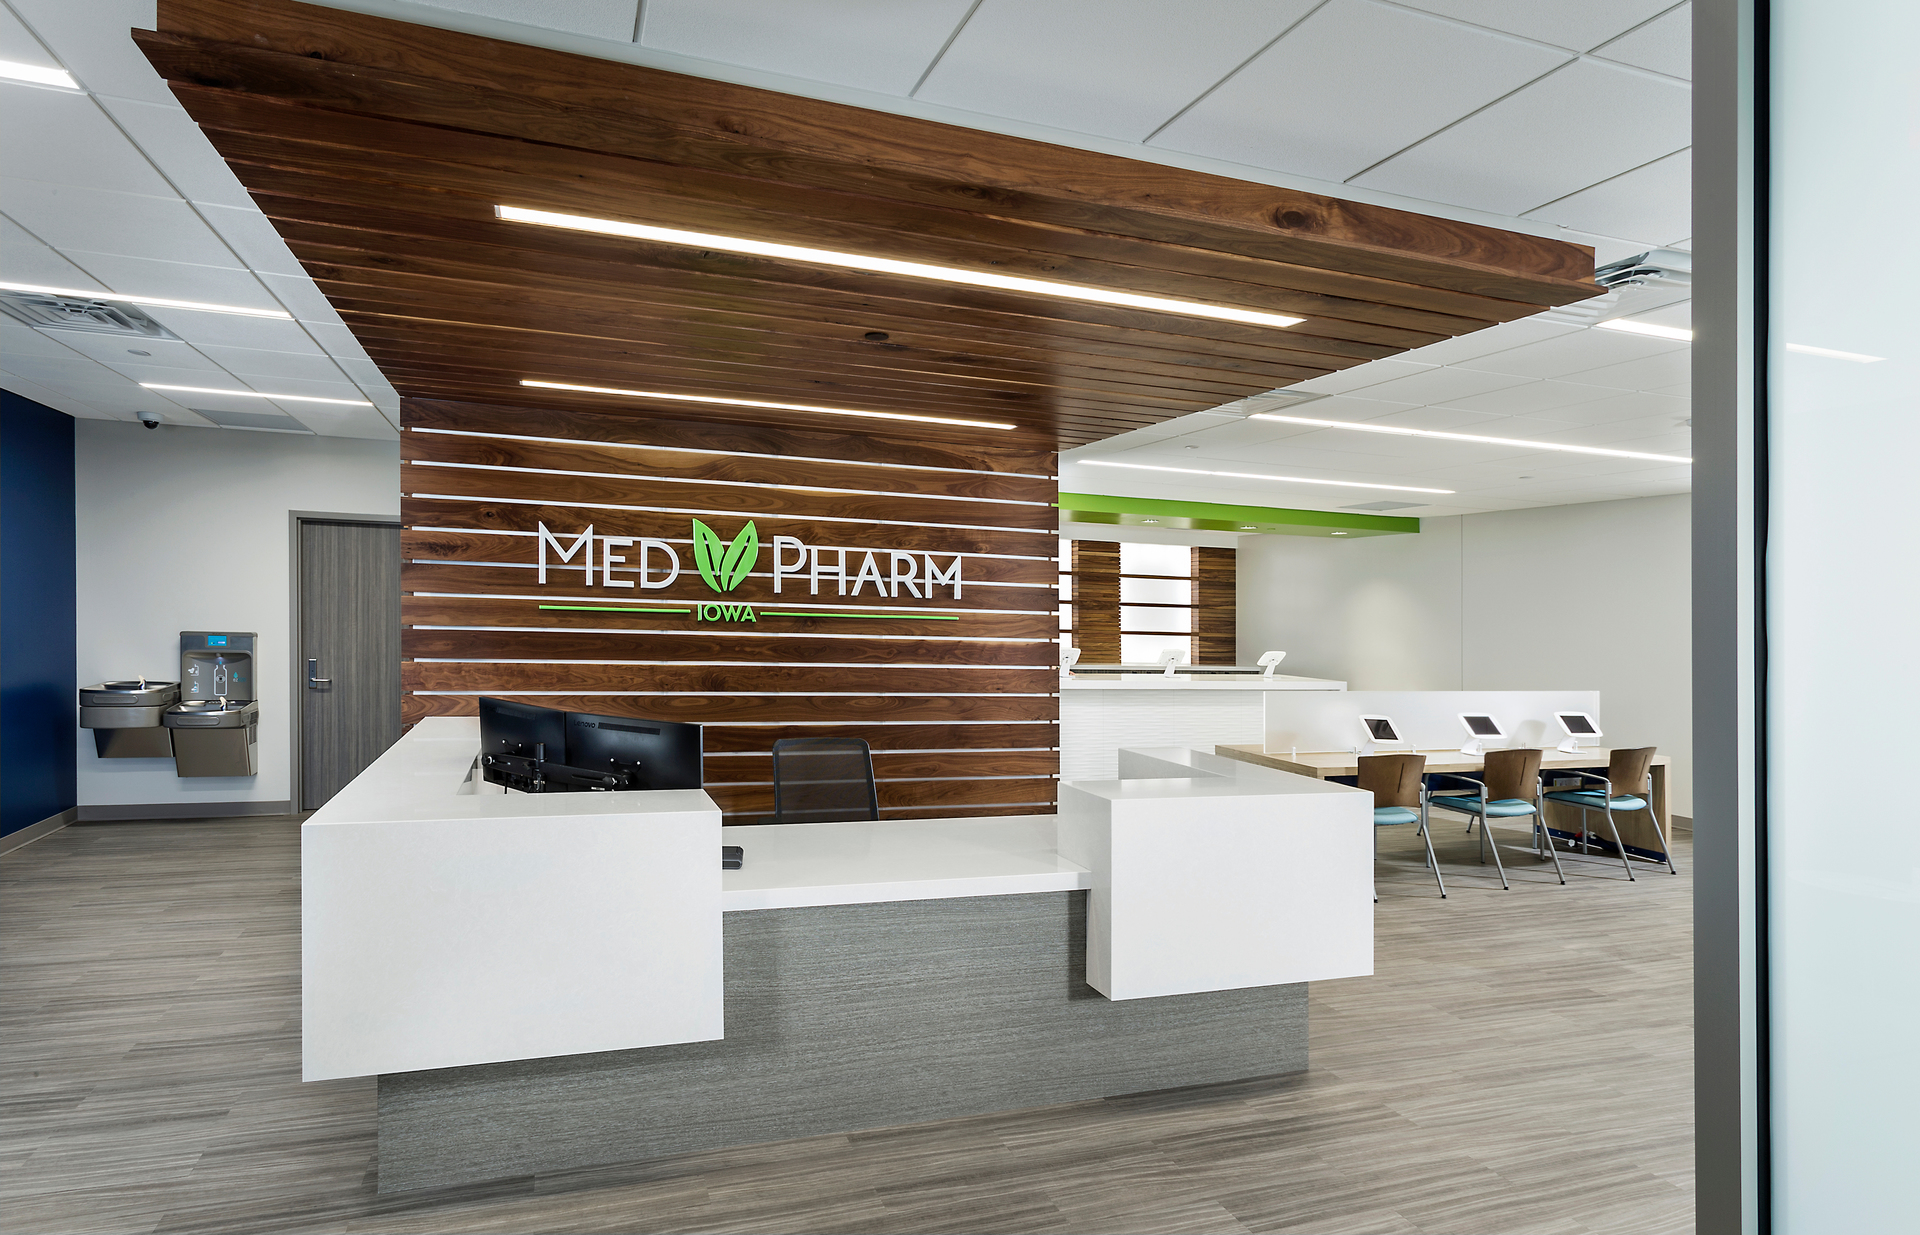 dras-cases-medpharm-iowa-custom-millwork-design-1920x1920